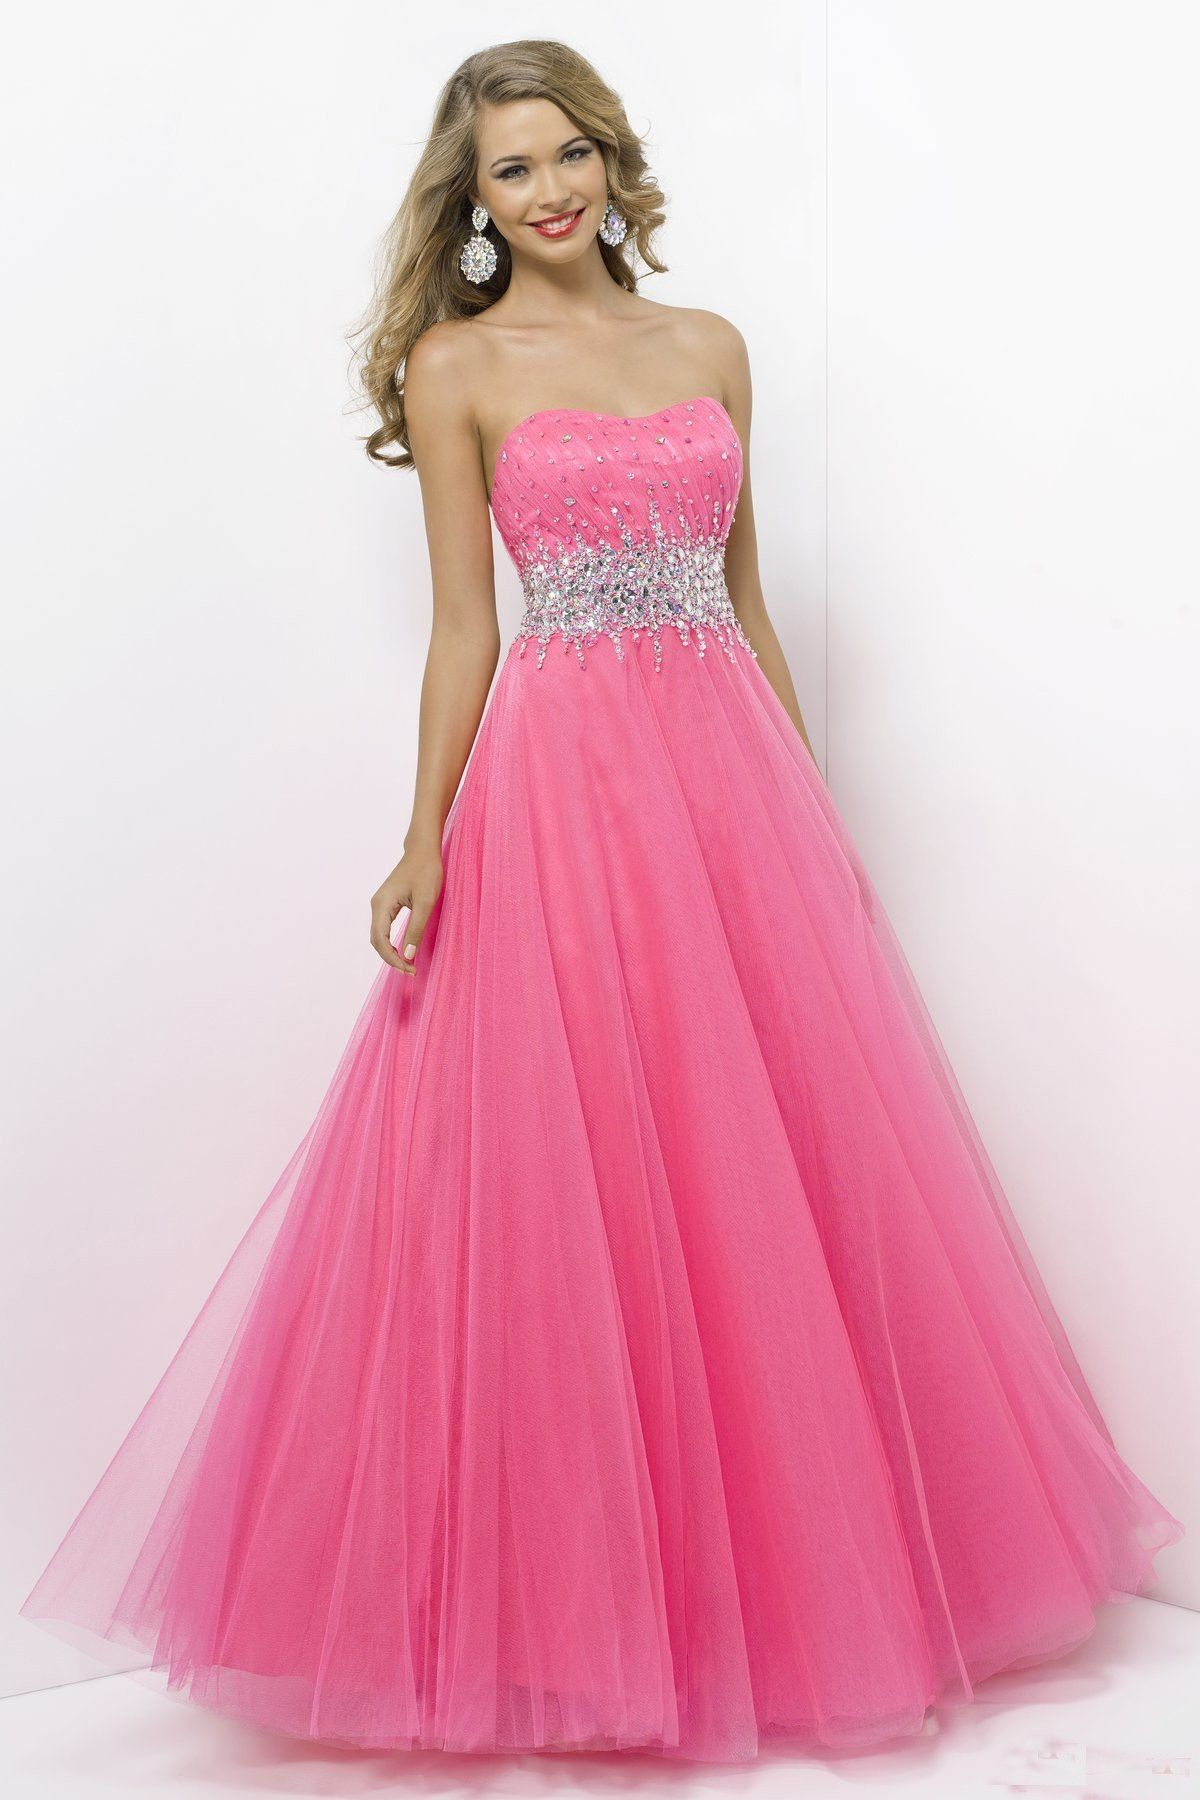 TBdress Prom Dresses Archives | Pinterest | Dulces 15, Color rosa y ...